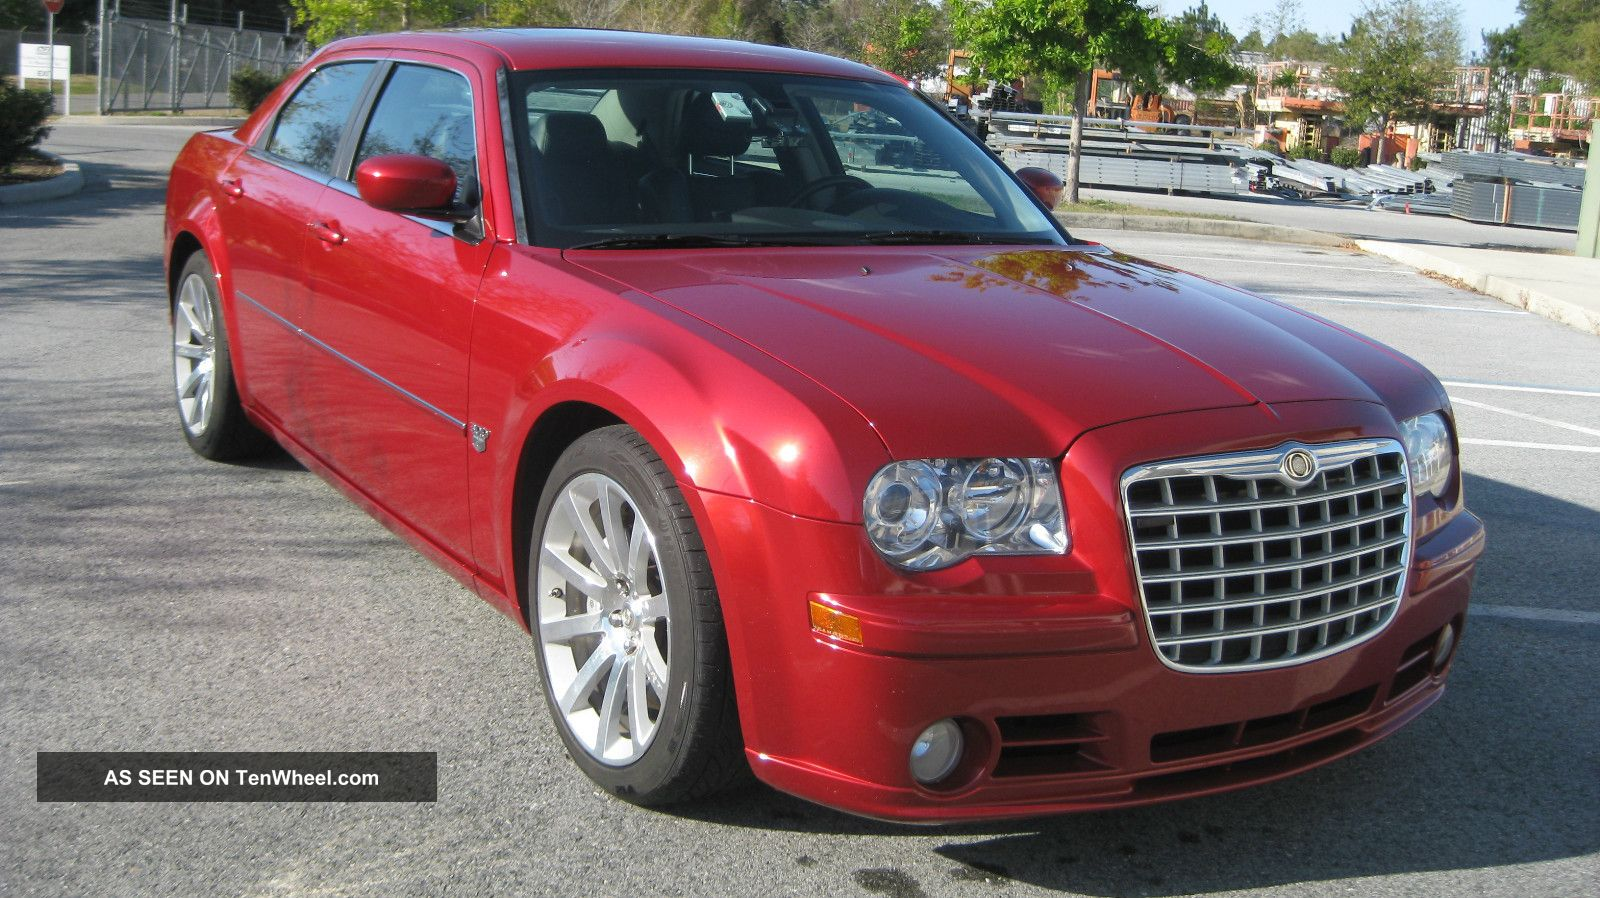 2013 Black Chrysler Interior 300 Srt8 Red